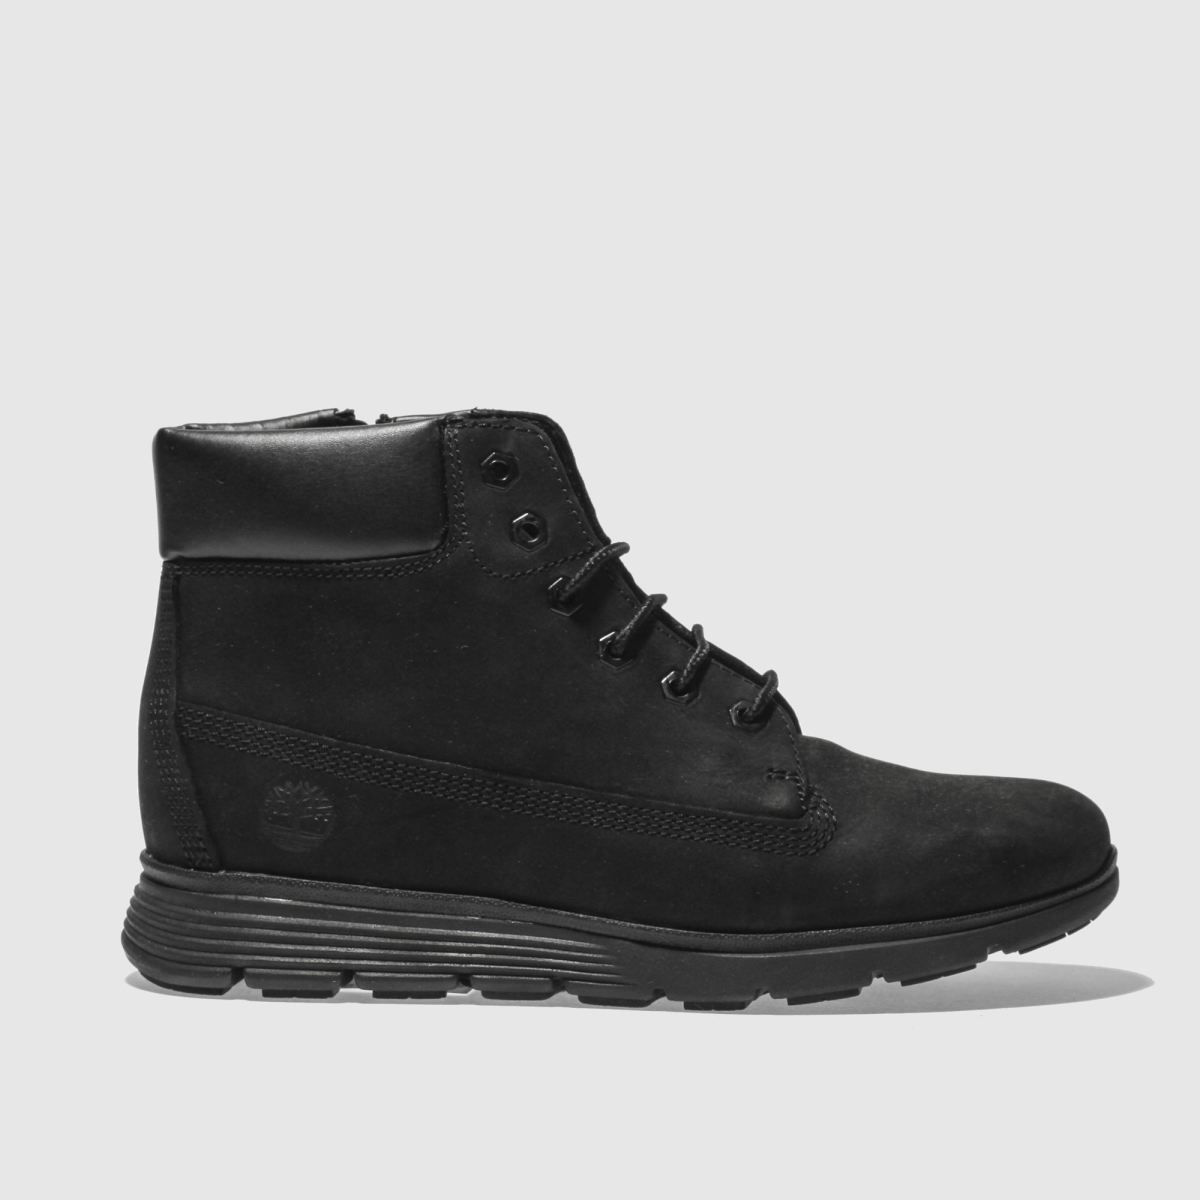 Timberland Black Killington 6 Inch Unisex Youth Youth